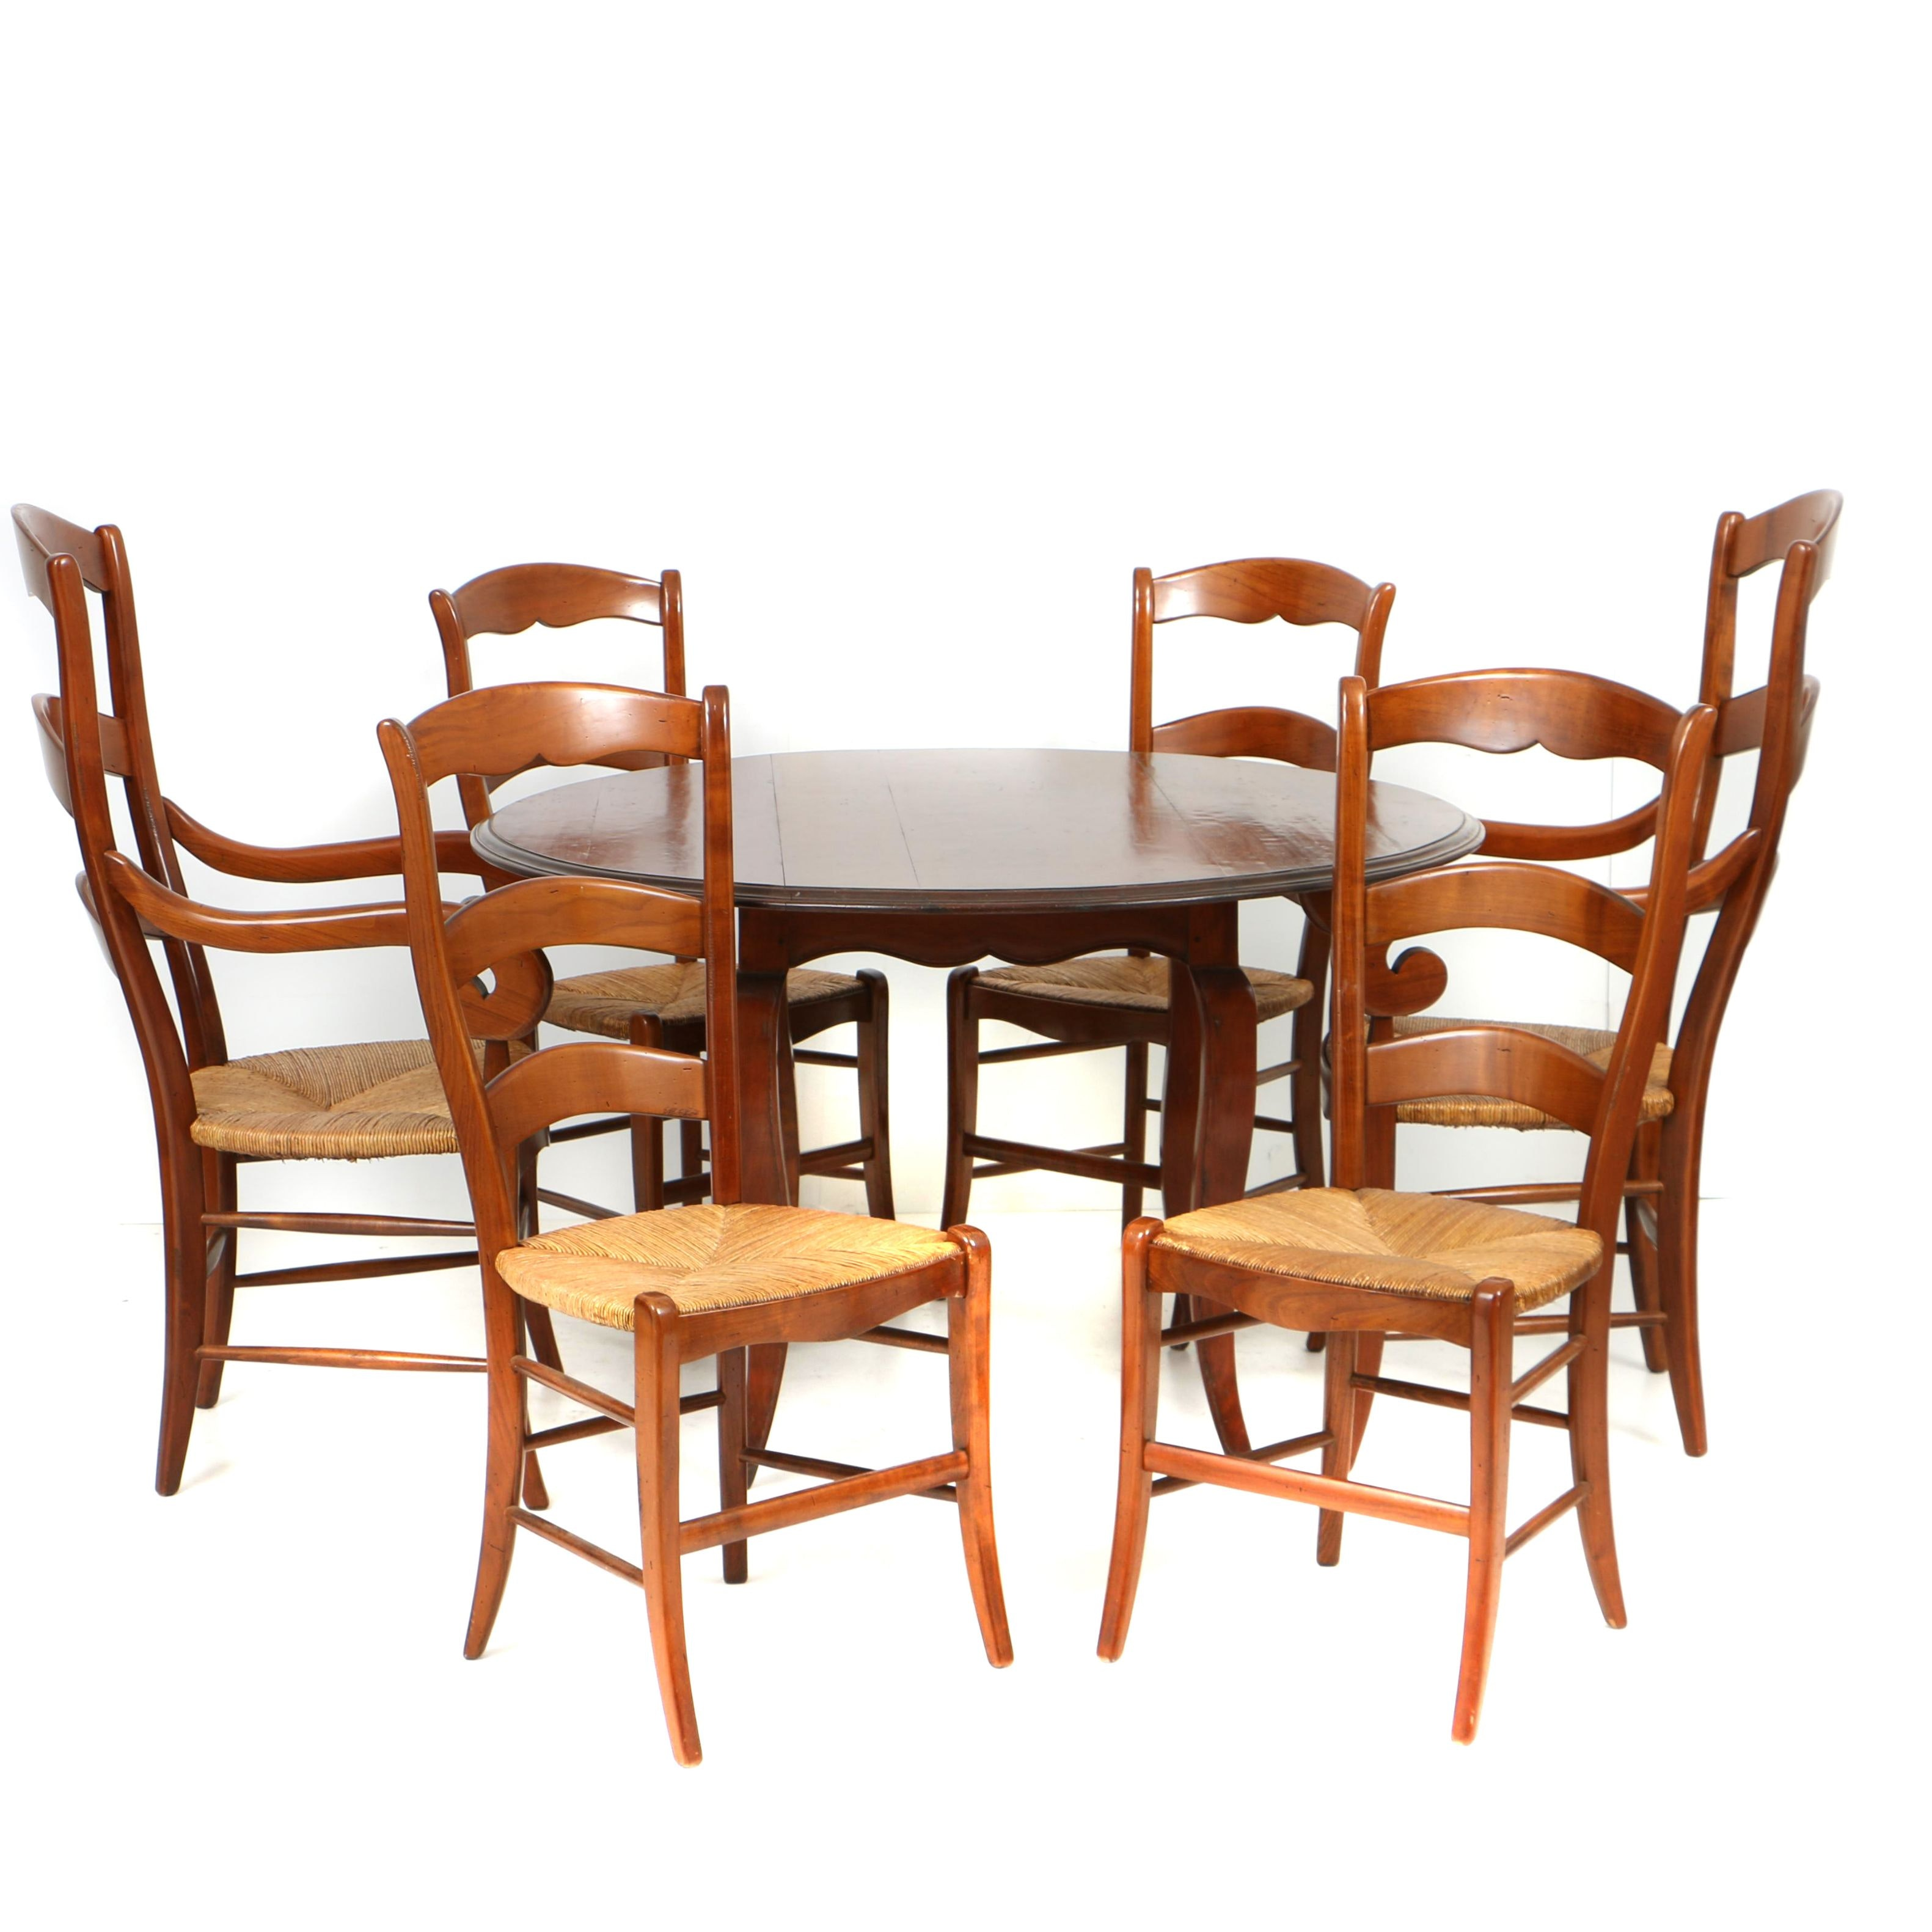 French Provincial Style Fruitwood Dining Table and Six Chairs